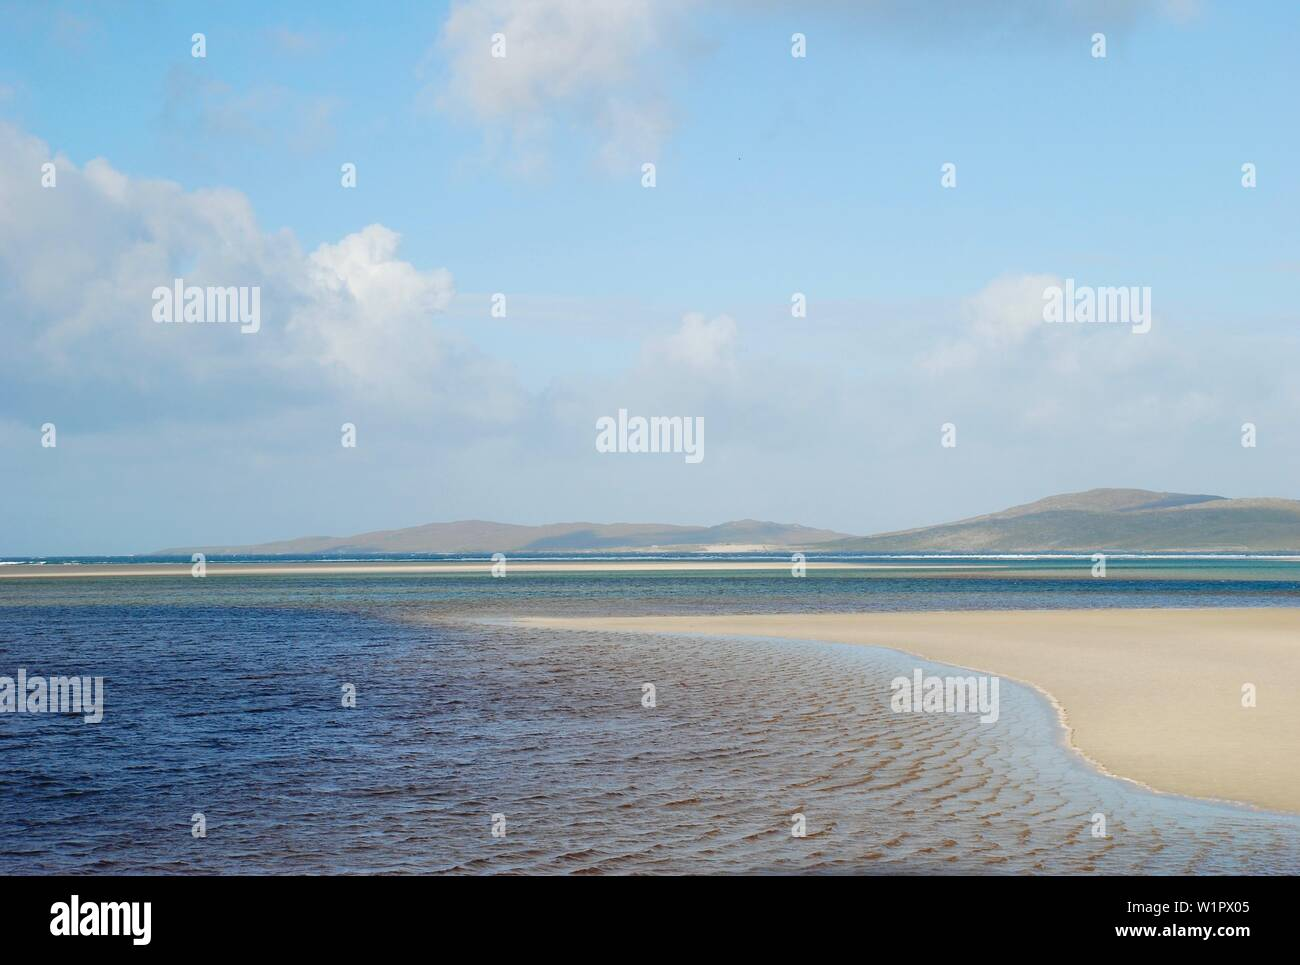 The beach at Luskentyre, Isle of Harris, Outer Hebrides - Stock Image